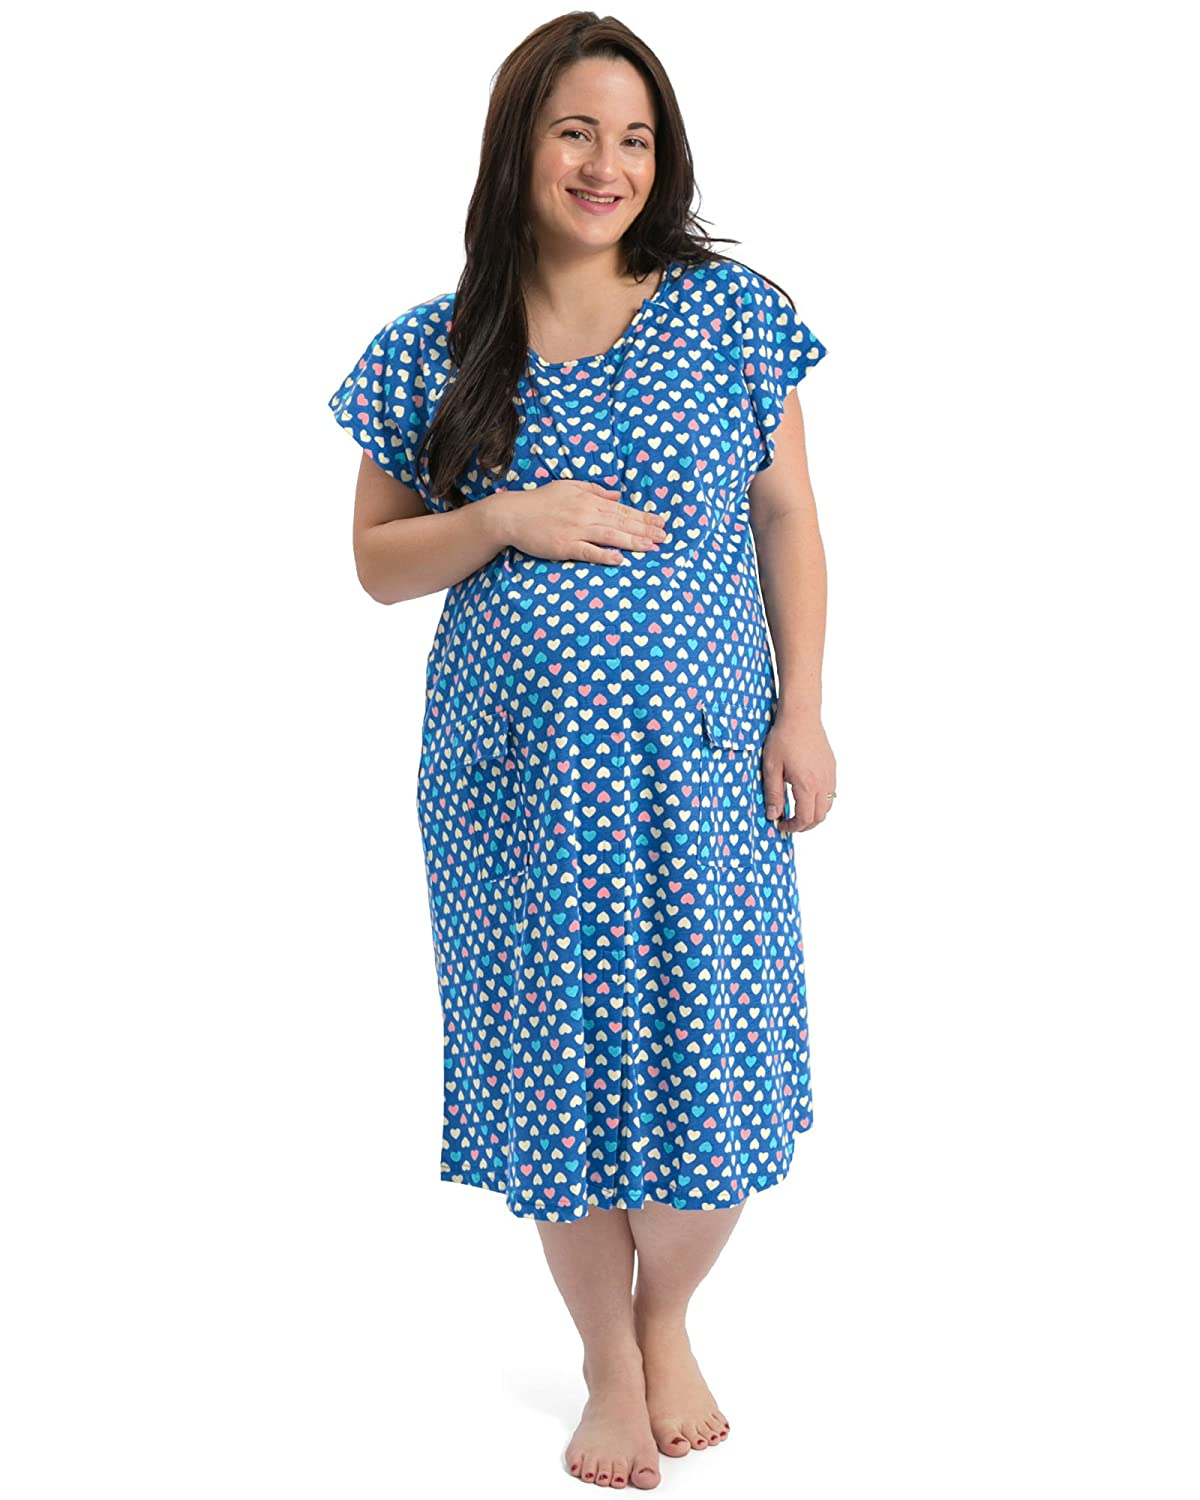 The Bravely Labor and Delivery Gown - The Perfect for Maternity/Hospital / Nursing